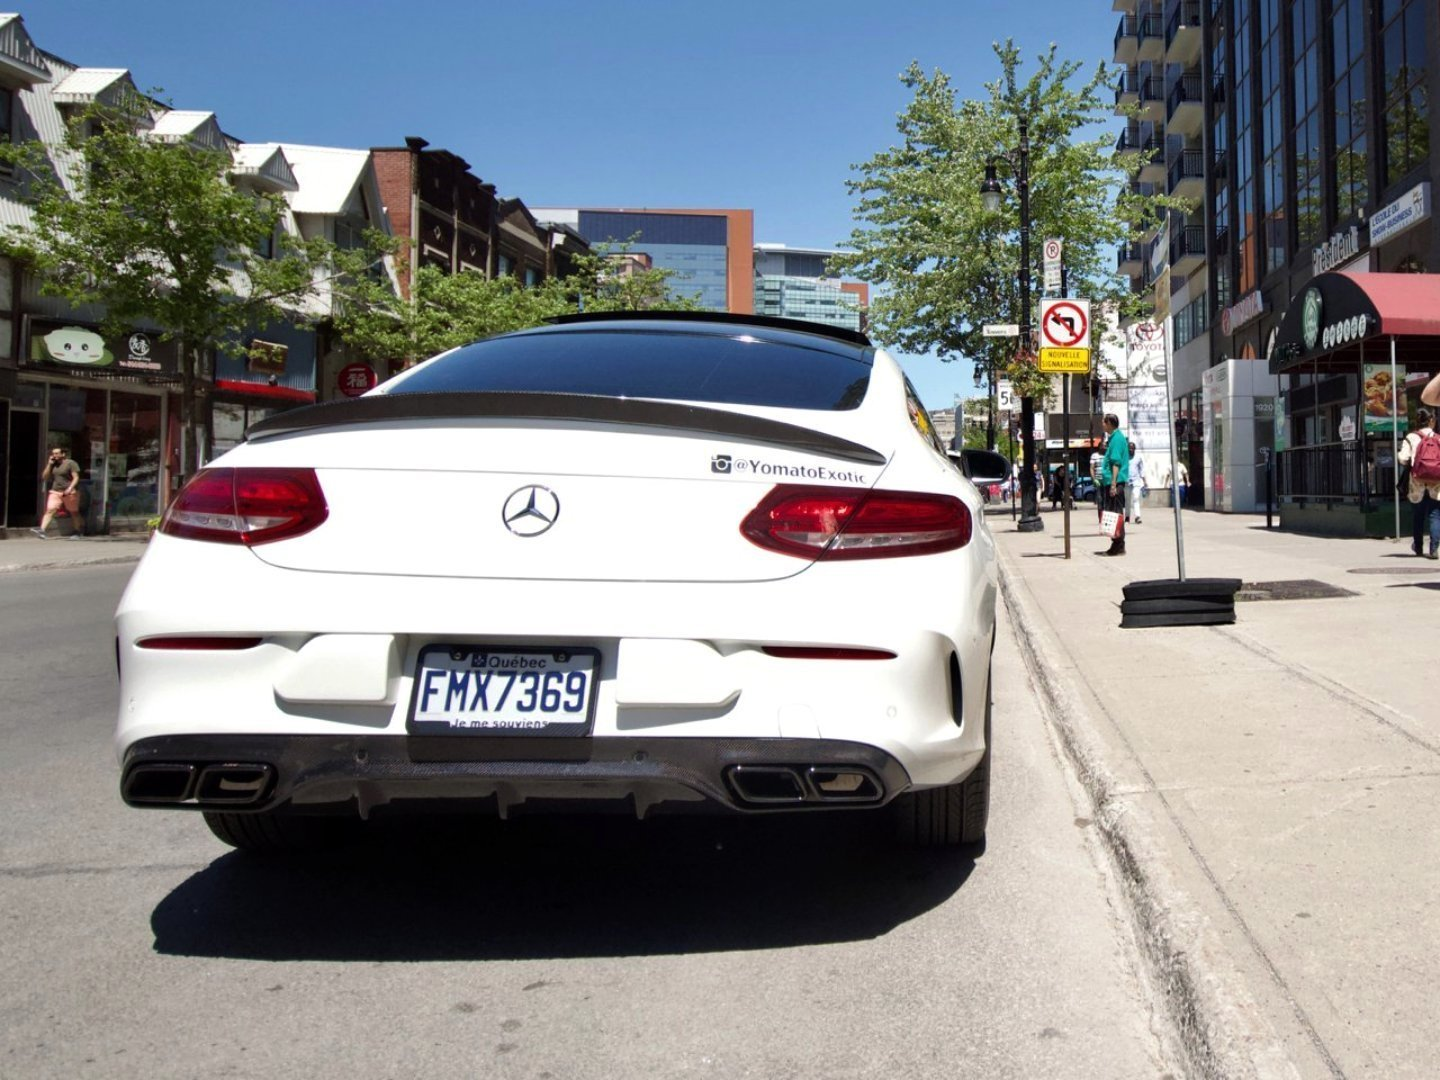 AMG PERFORMANCE DIFFUSER -  - Yomato Carbon - Montreal Canada